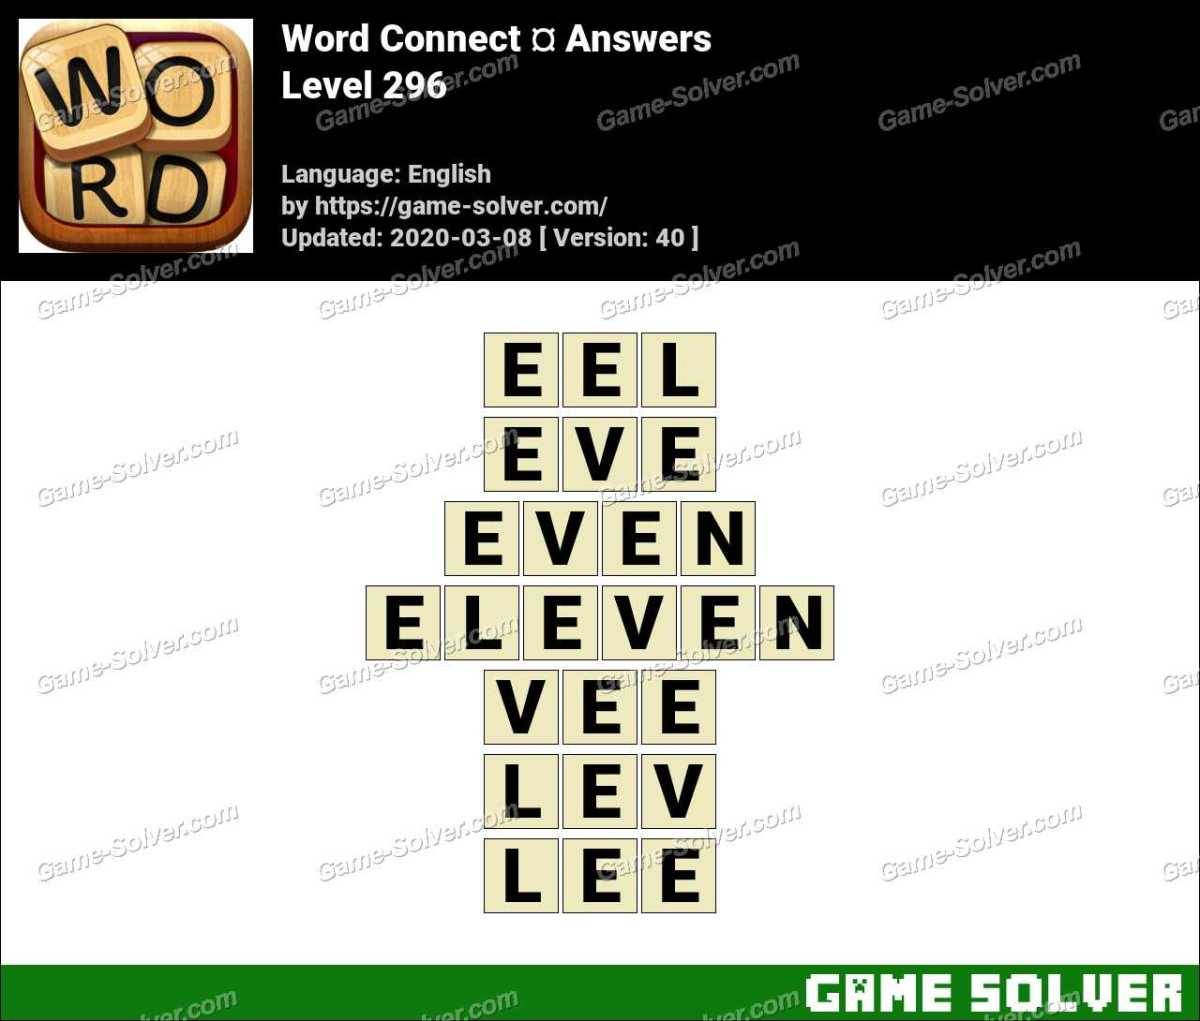 Word Connect Level 296 Answers